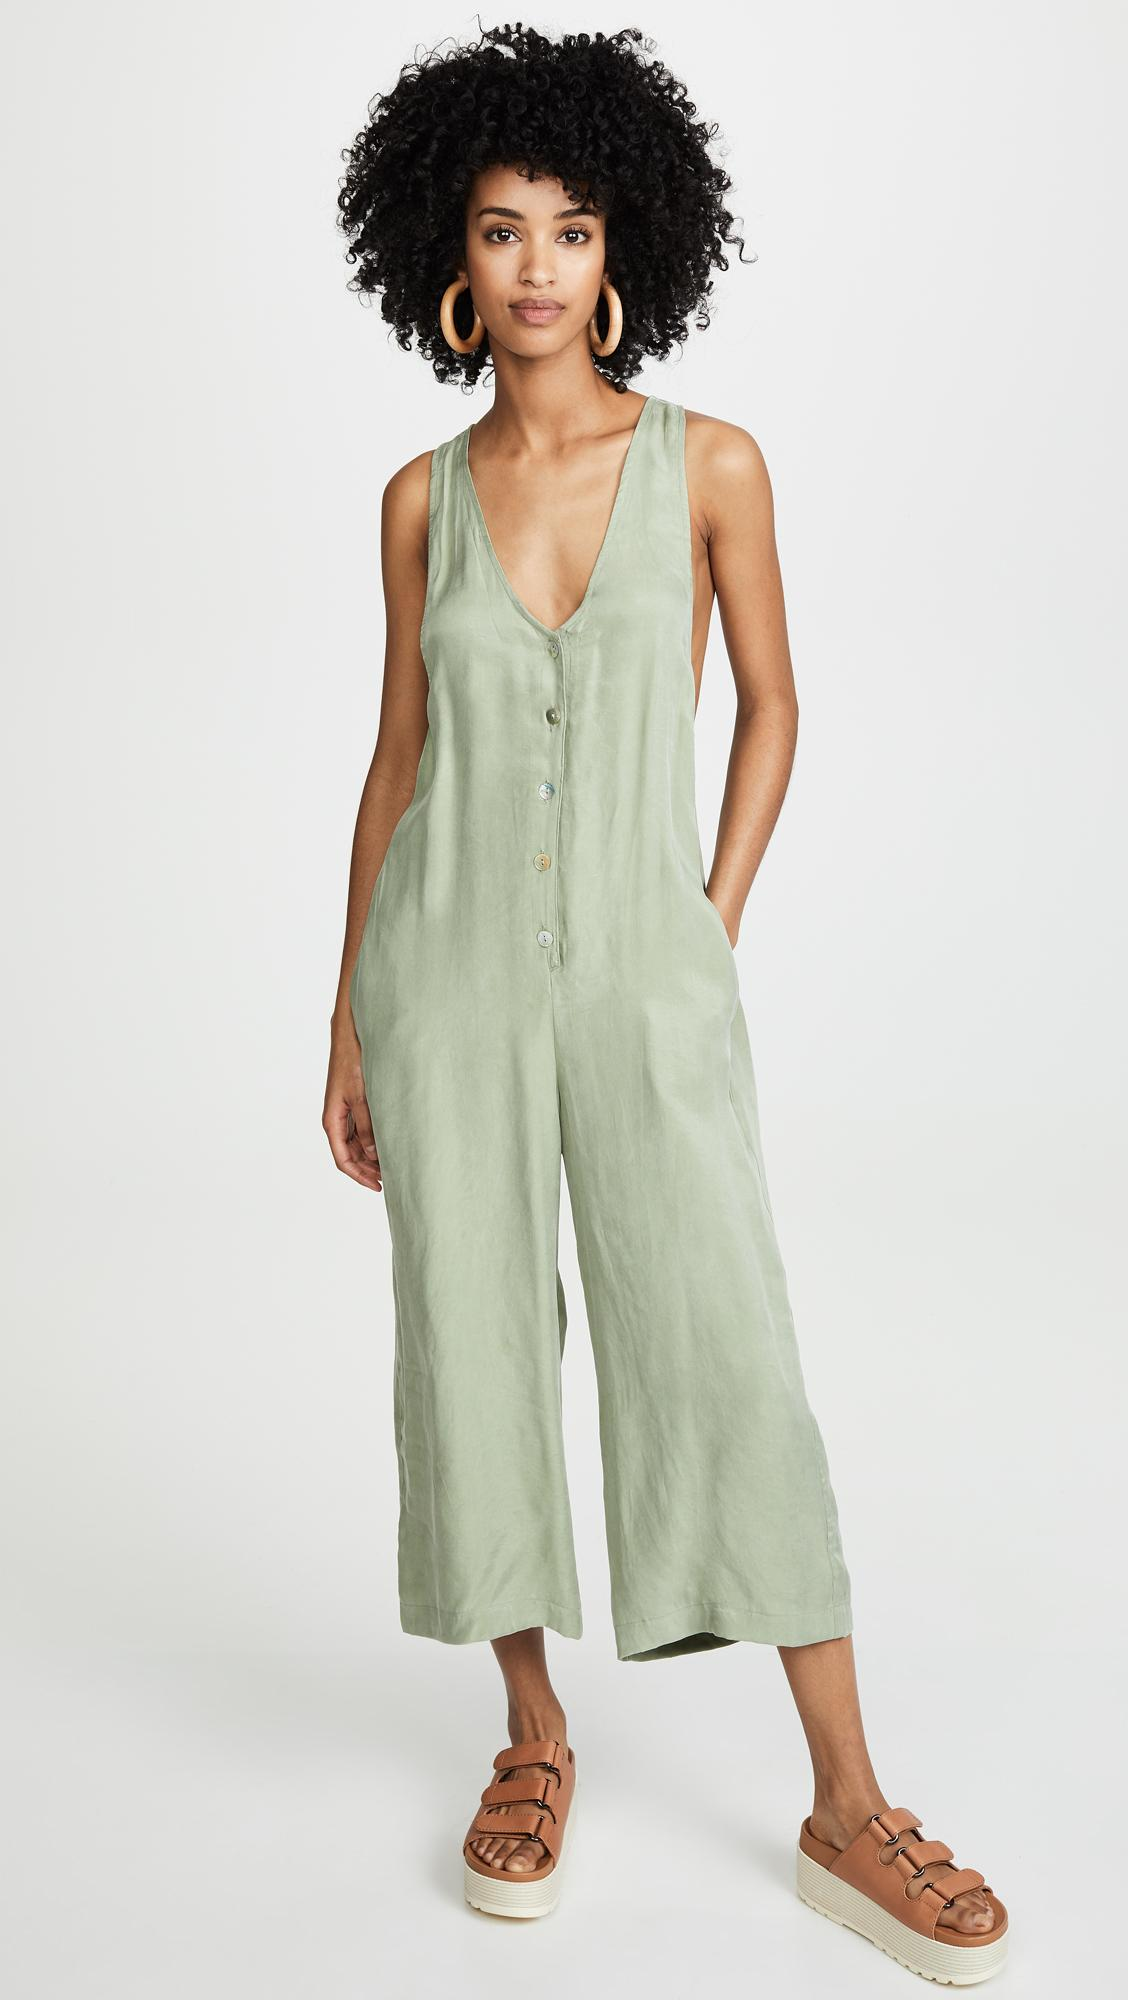 d8773de3f09 Lyst - MINKPINK Racer Back Jumpsuit in Green